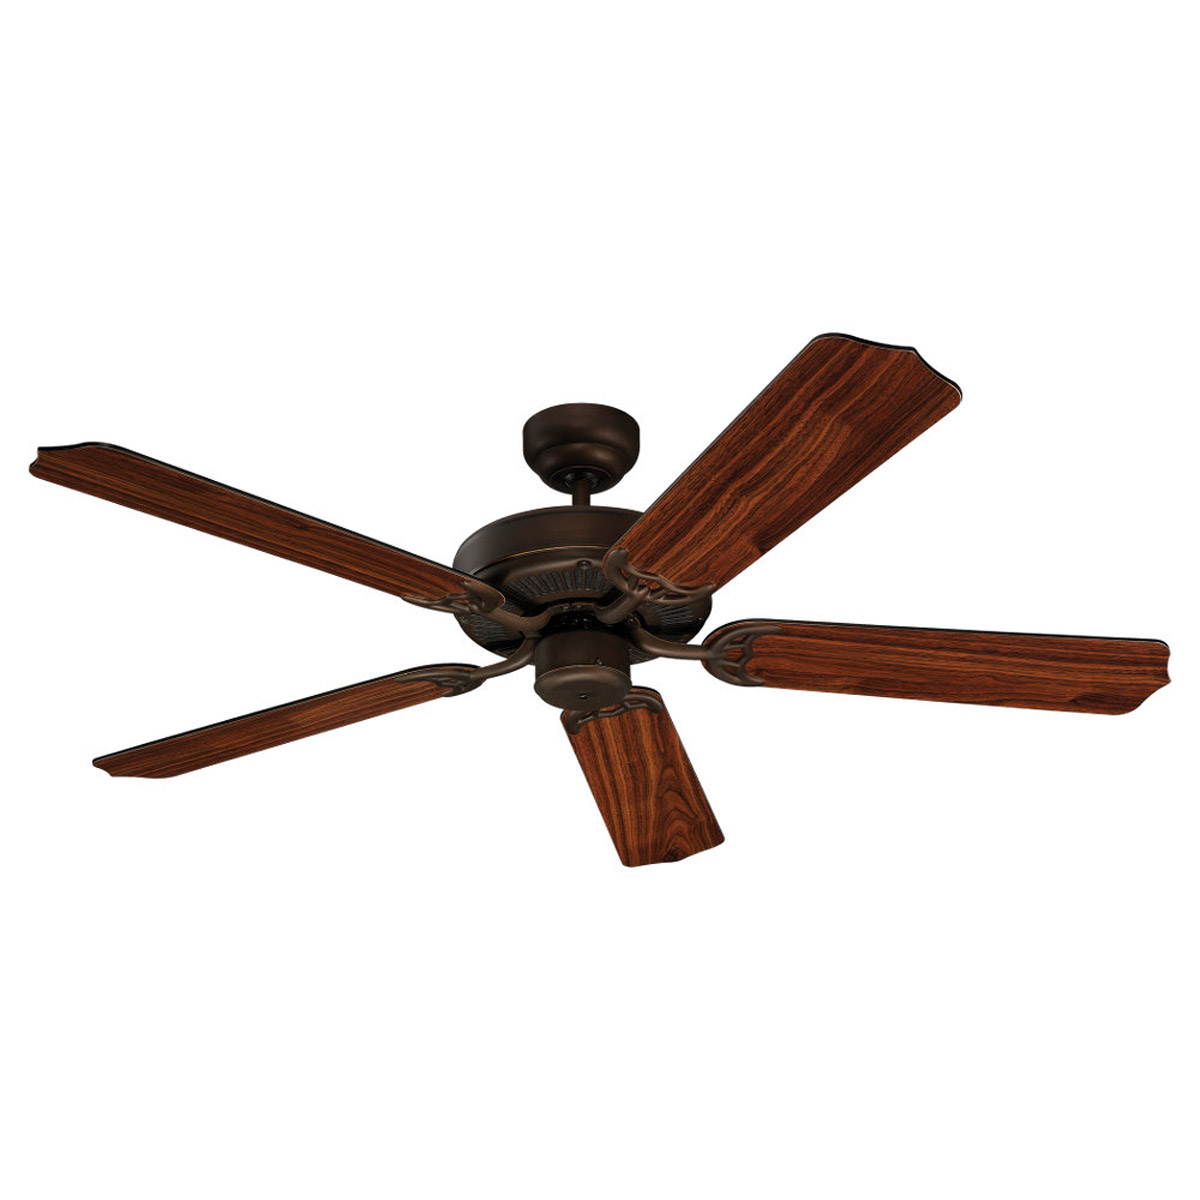 Sea Gull Lighting 52in Quality Max Ceiling Fan in Roman Bronze 15030-191 photo